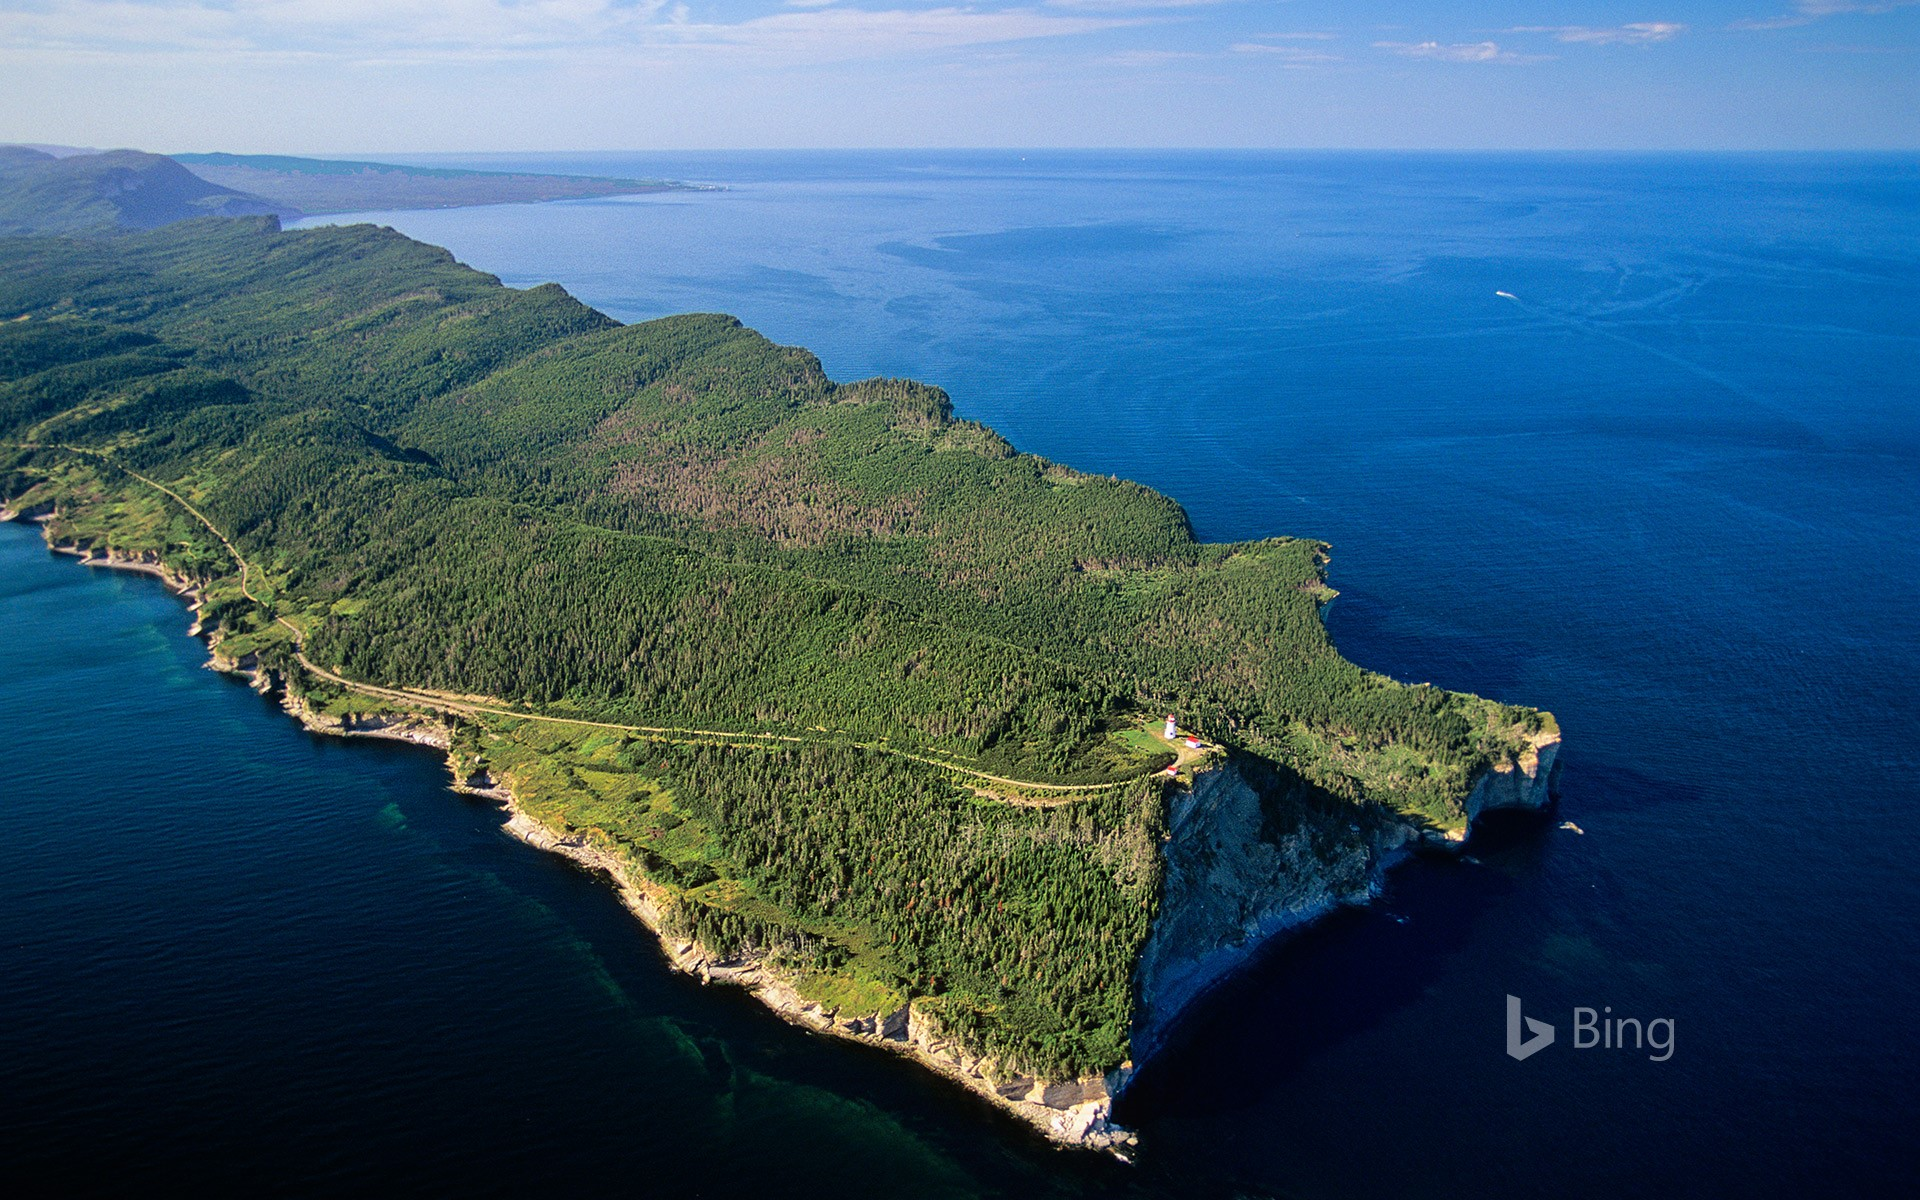 Aerial view of the Gaspé Peninsula, Forillon National Park, Quebec, Canada